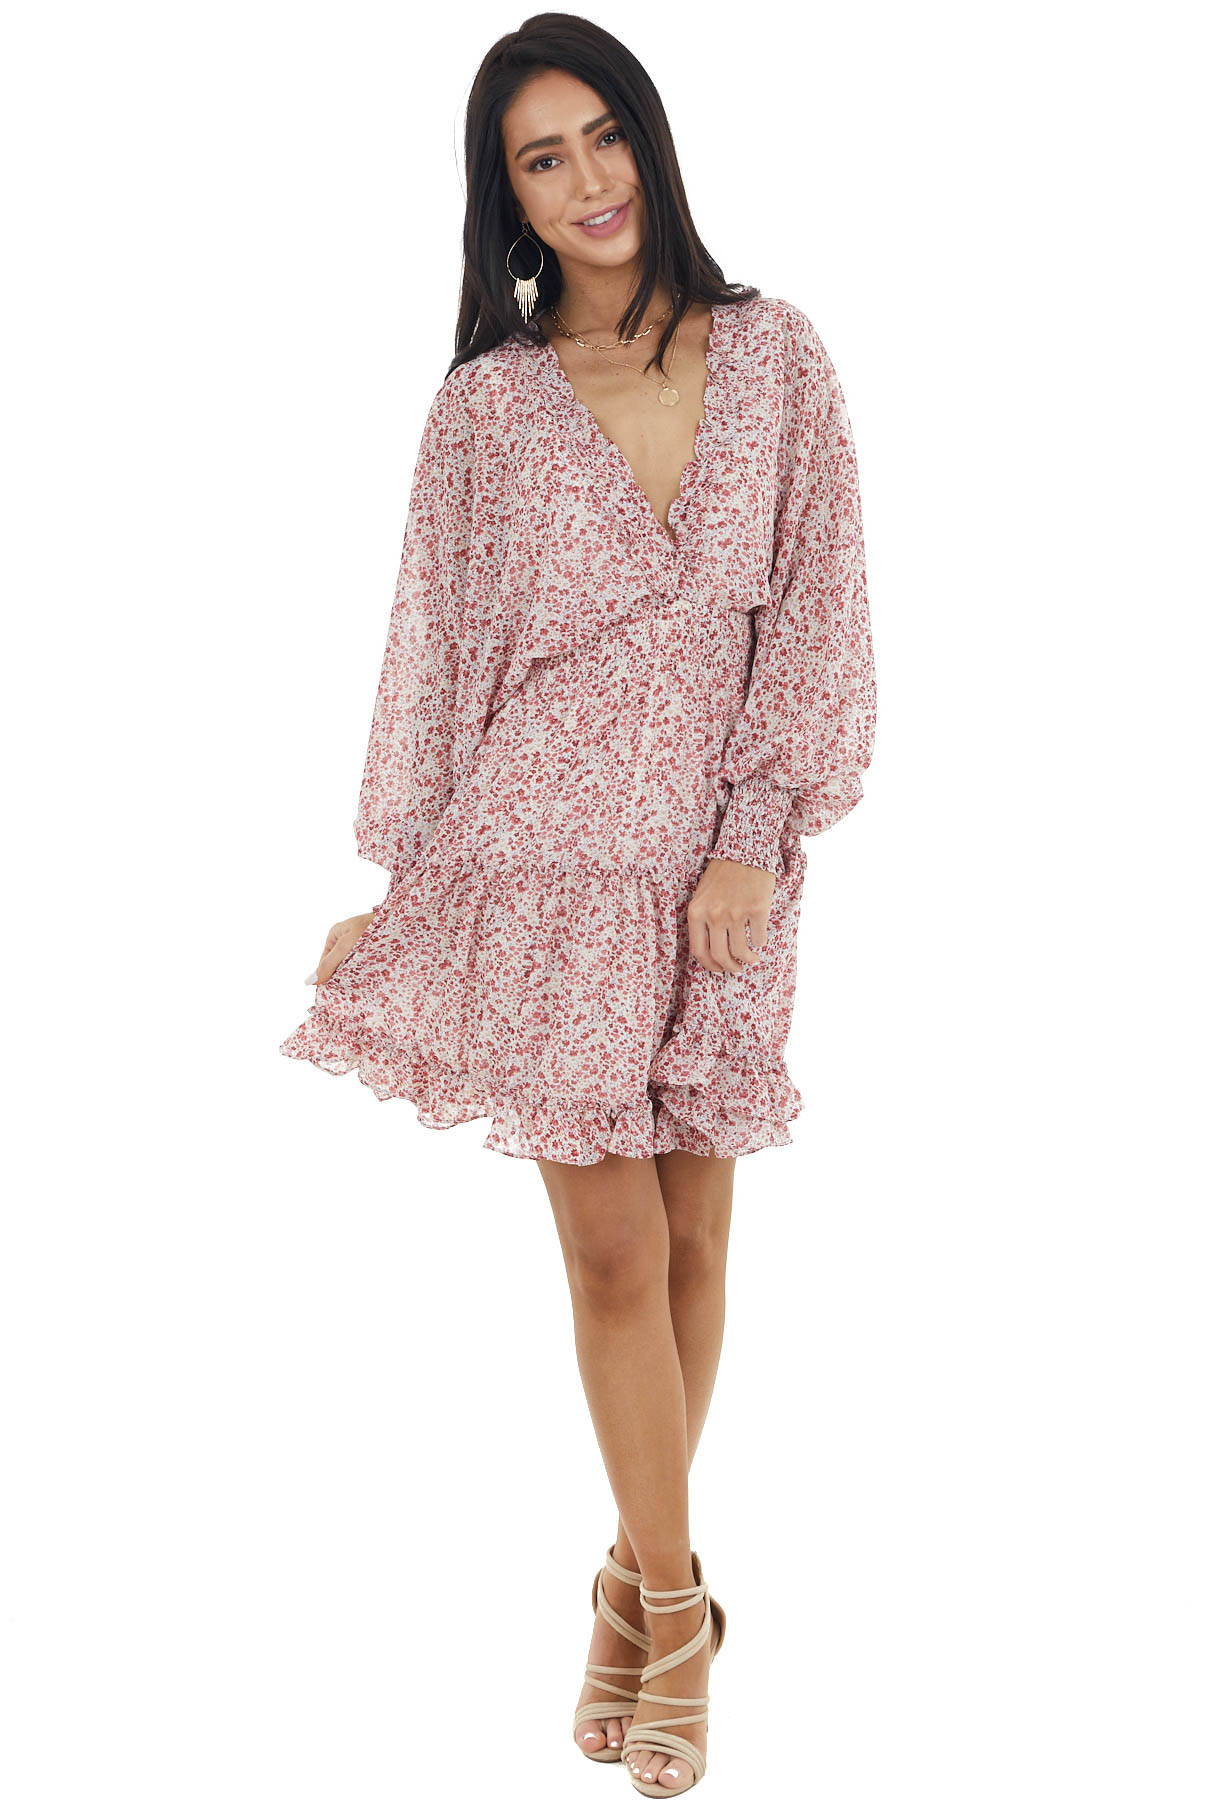 Ivory Floral Print Long Sleeve Dress with Smocked Details